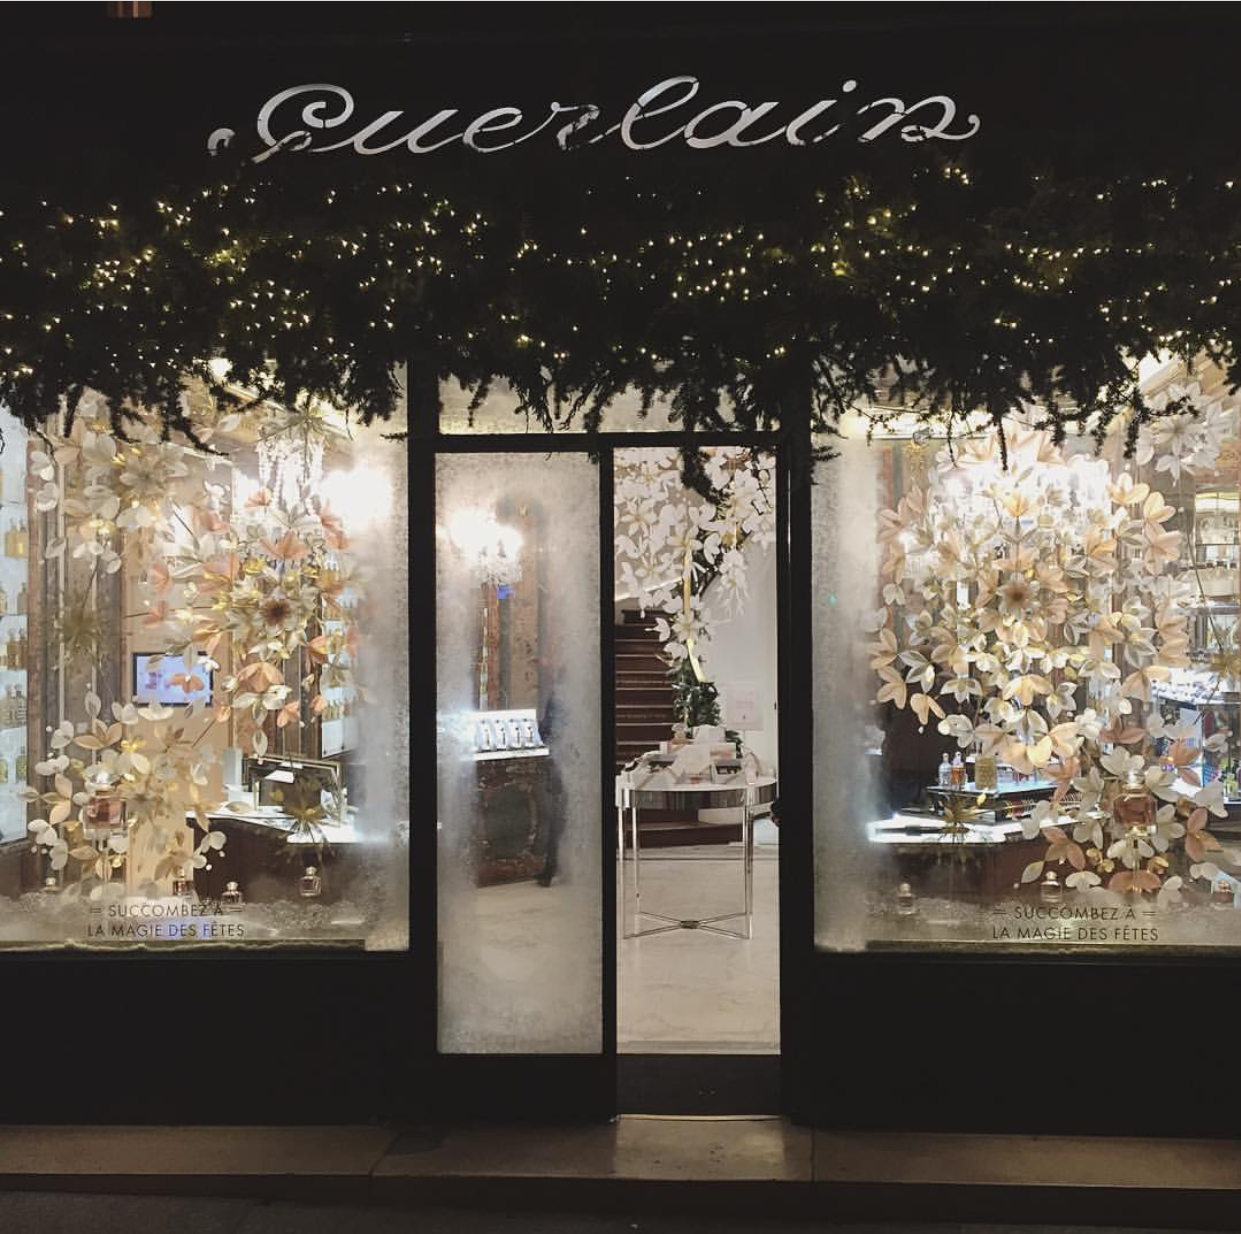 - Fairytale Window on the Champs-Elysees